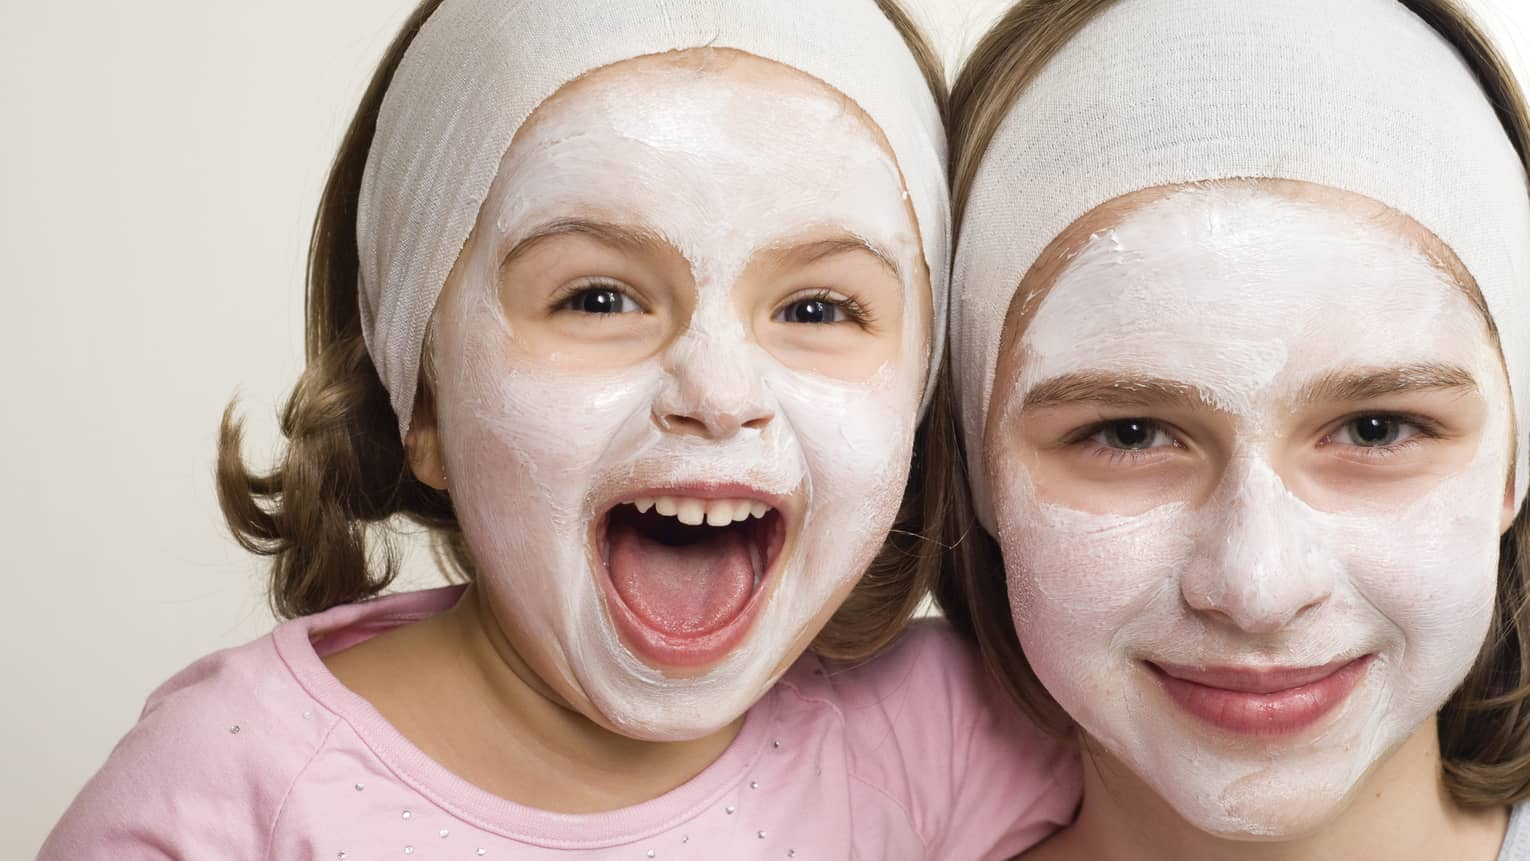 Two young girls with white clay spa masks on faces, towel wraps around foreheads